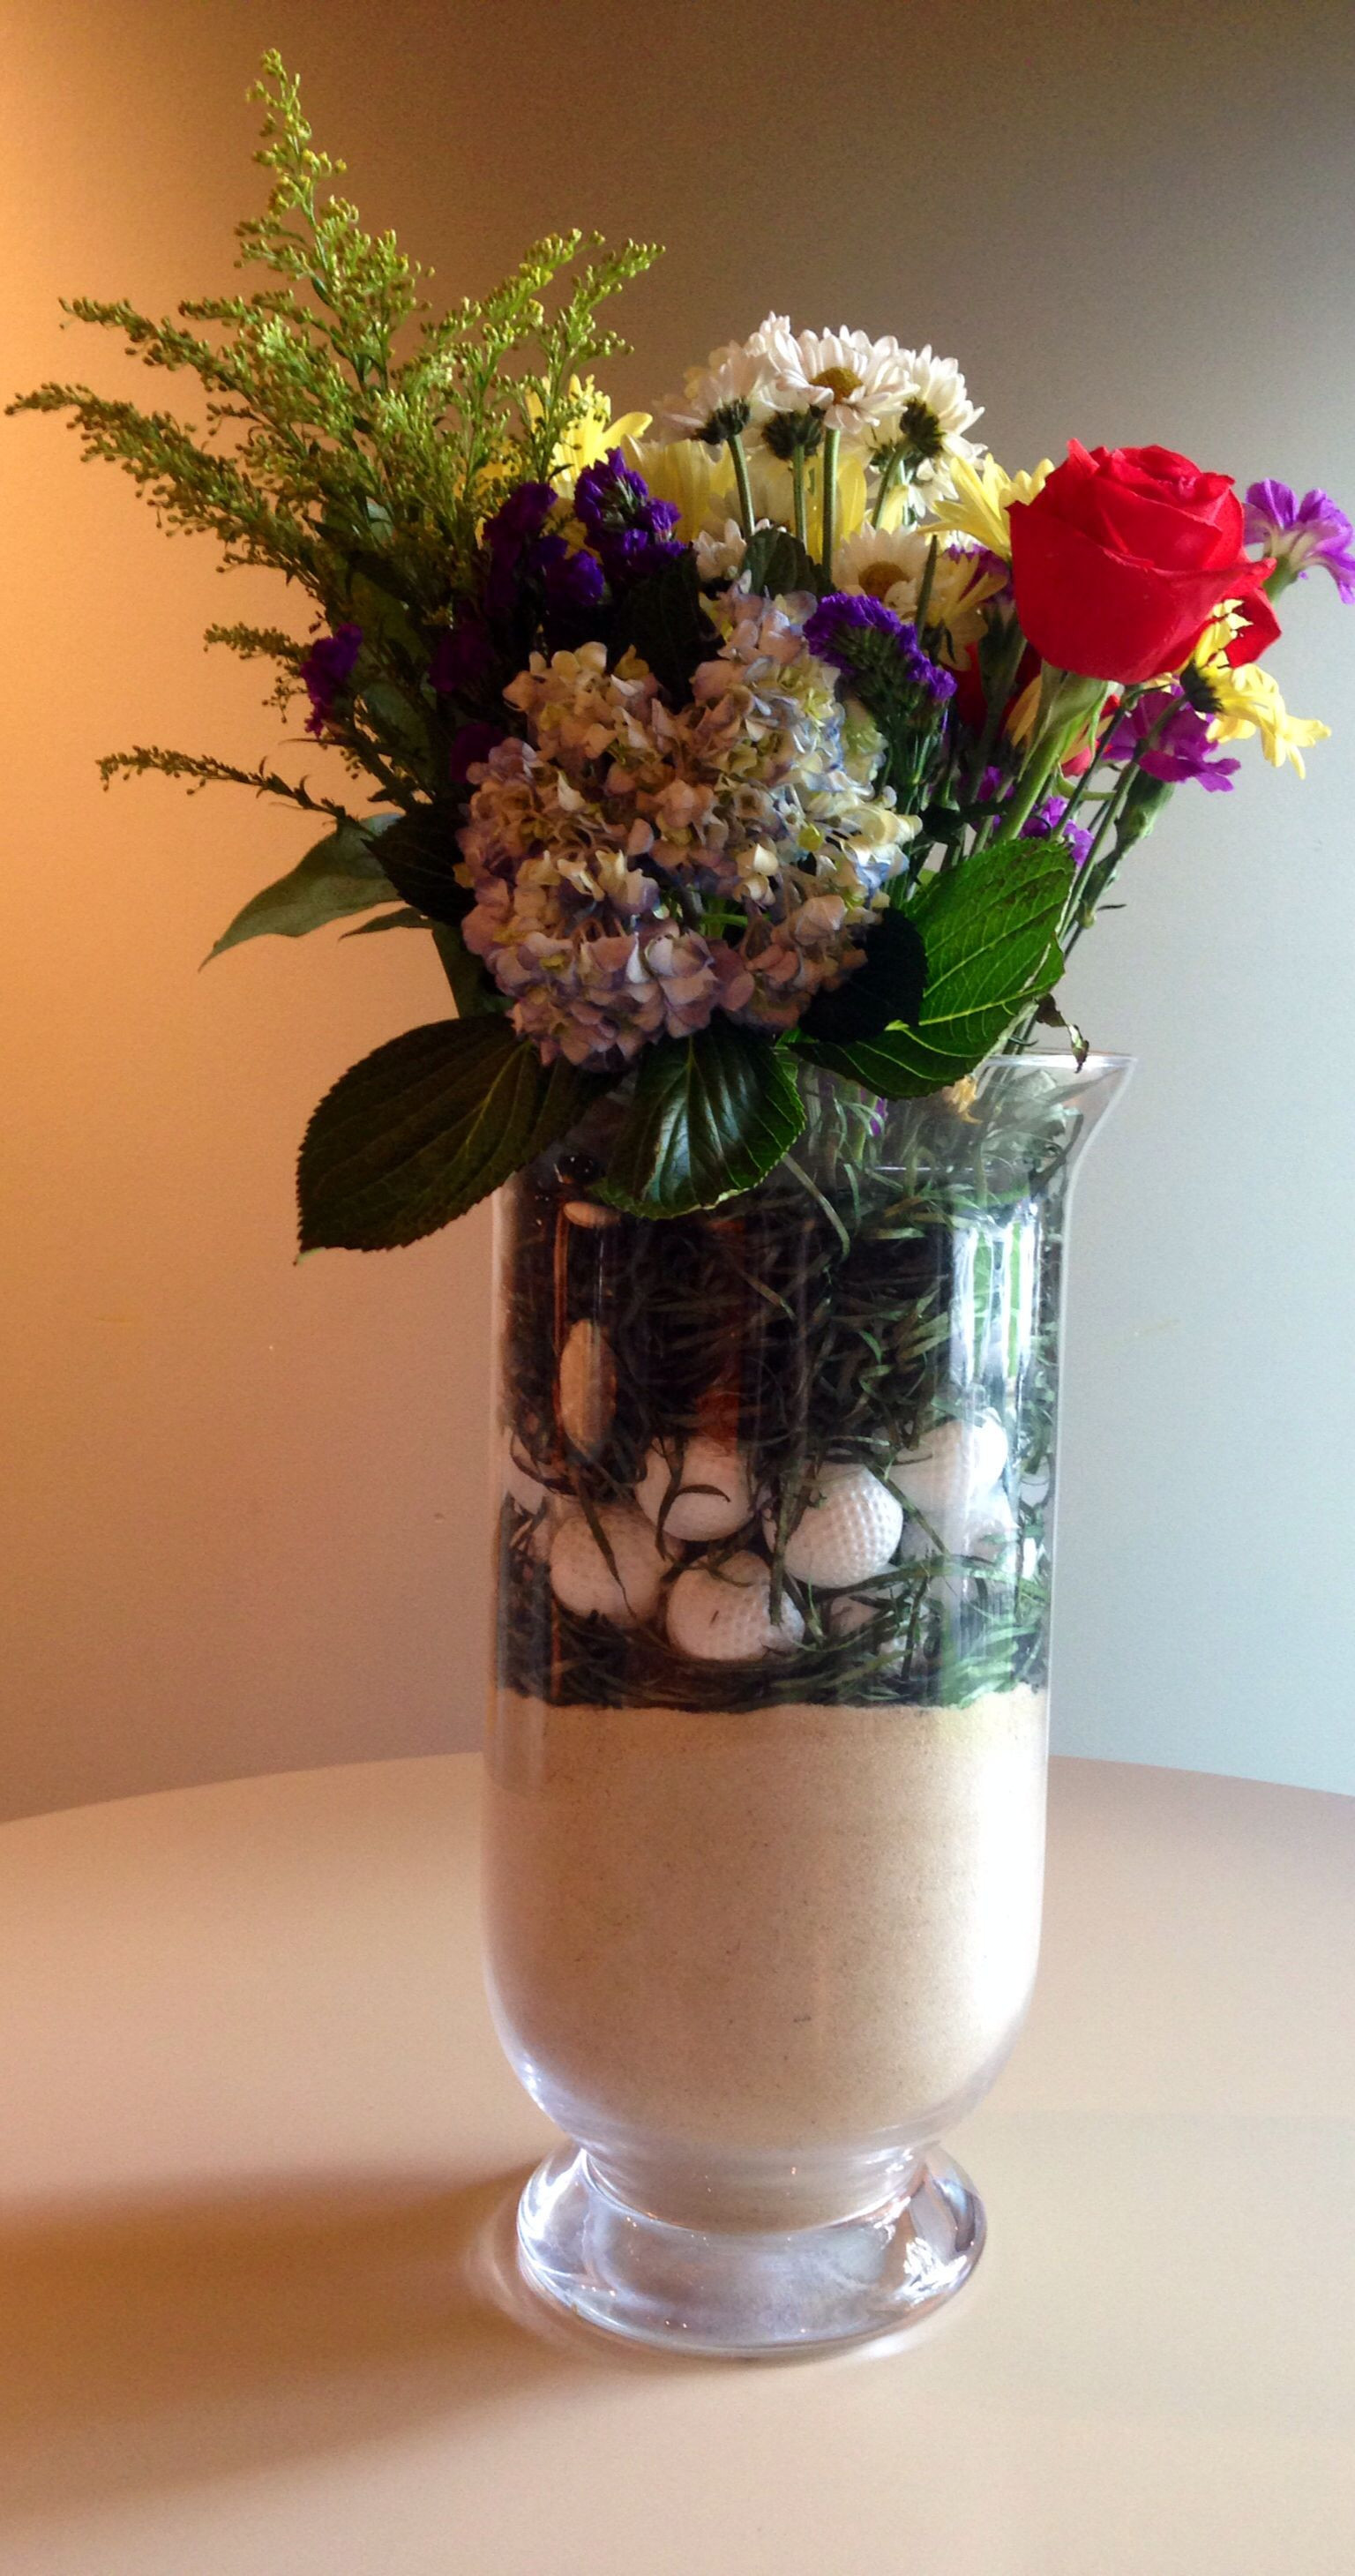 tall pewter vase of vases collection page 39 vases artificial plants collection throughout golf ball vases photos golf theme baby shower centerpieces place a vase to hold water for of golf ball vases